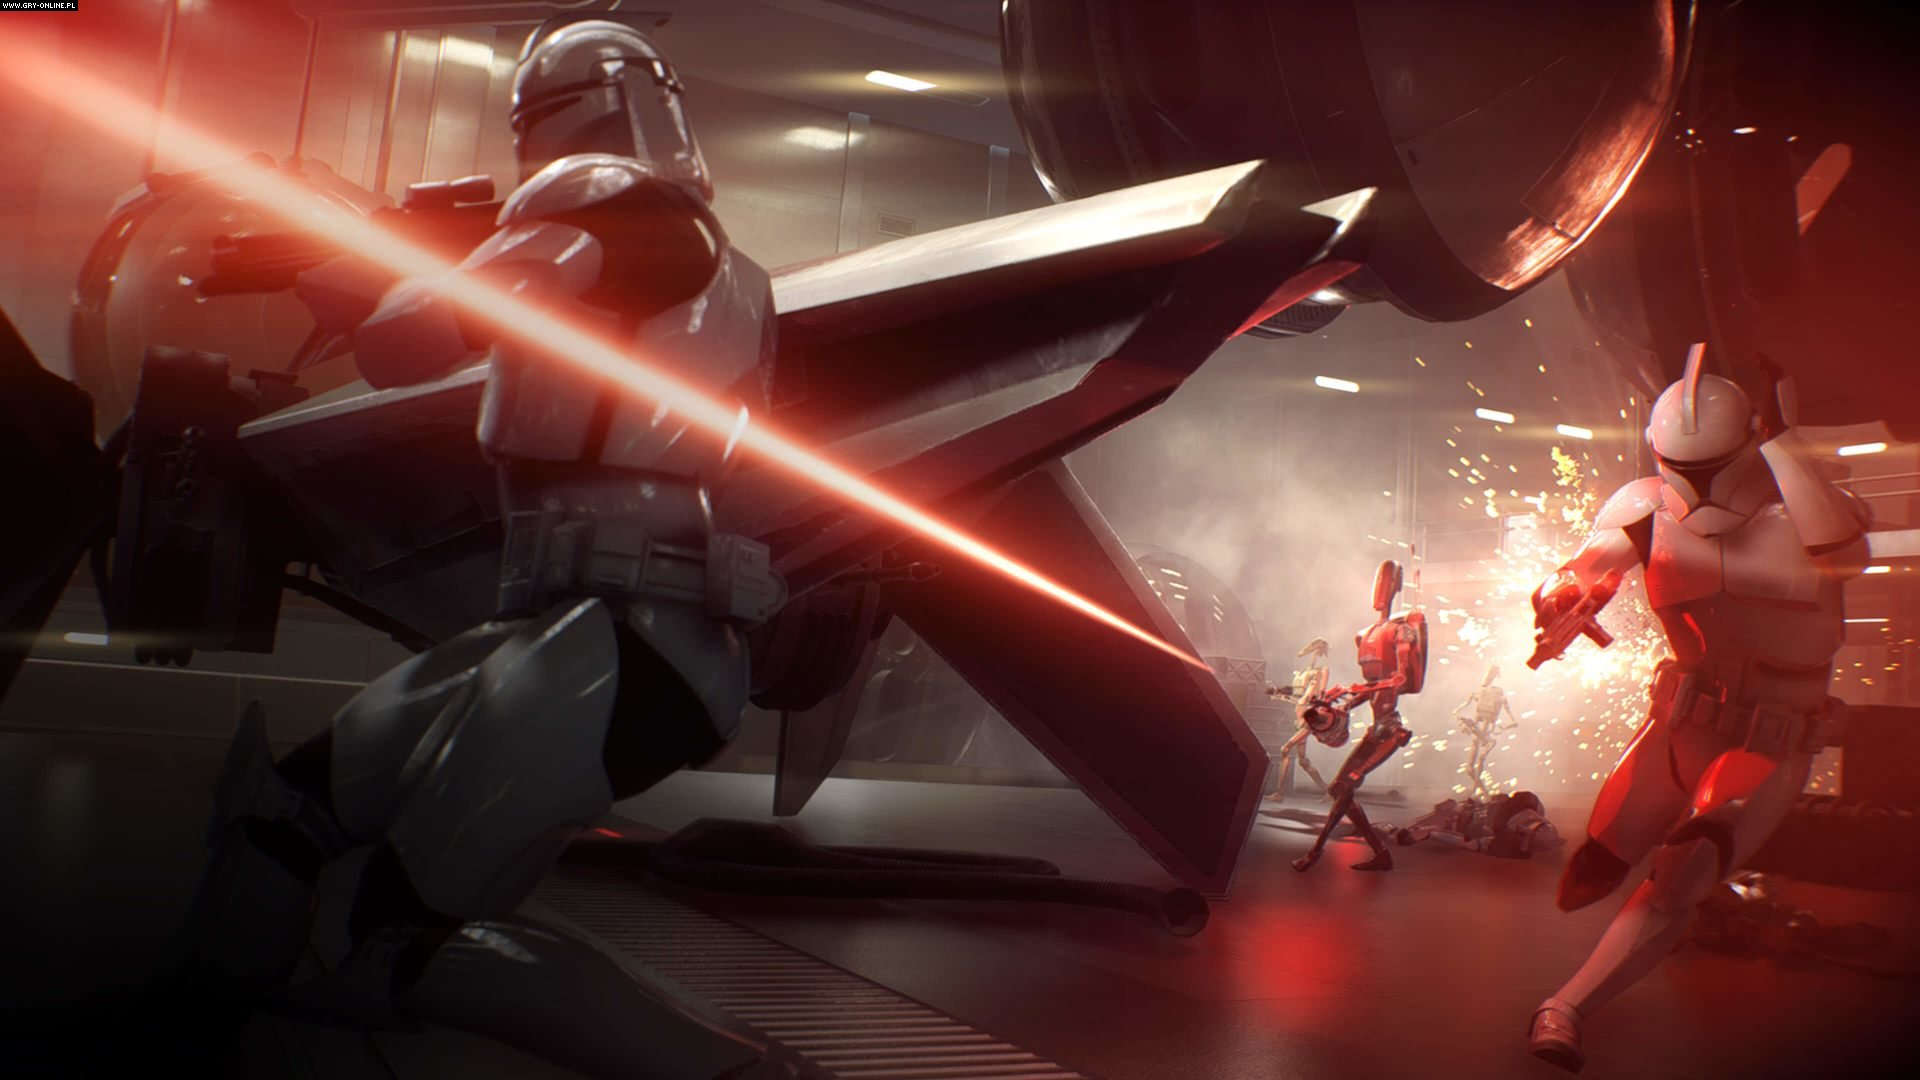 Star Wars: Battlefront II PC, PS4, XONE Games Image 8/32, EA DICE / Digital Illusions CE, Electronic Arts Inc.